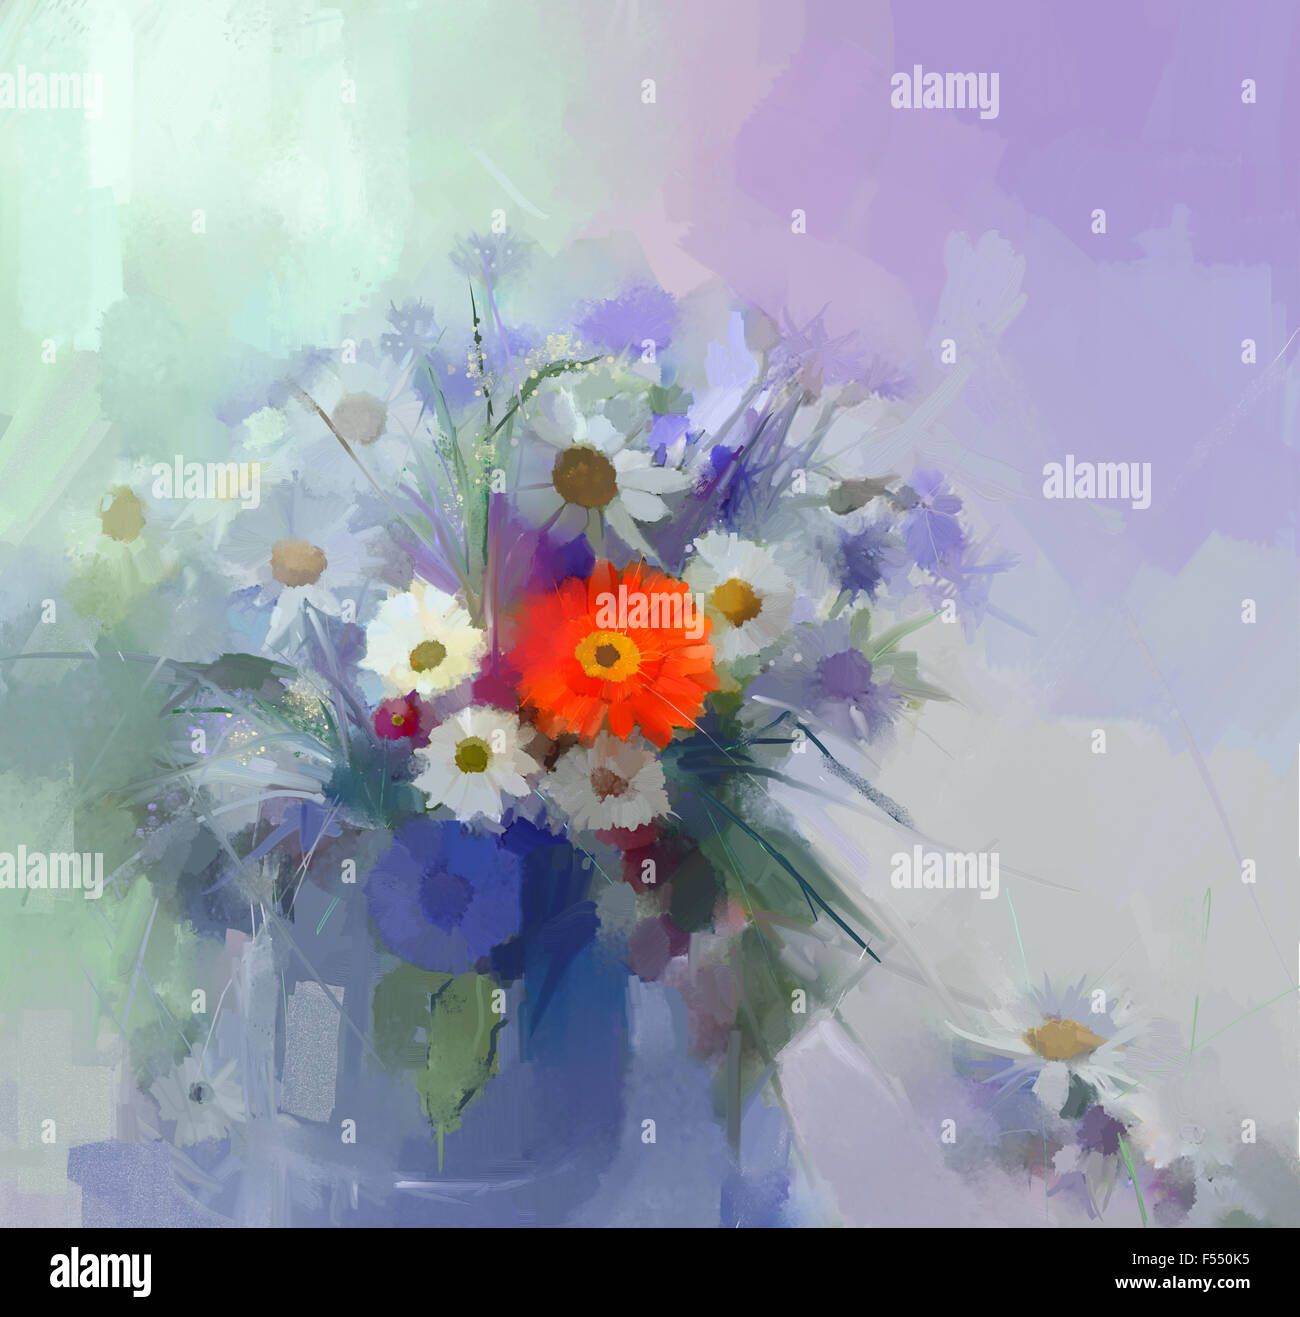 Oil painting still life bouquet flowers in vase - Stock Image